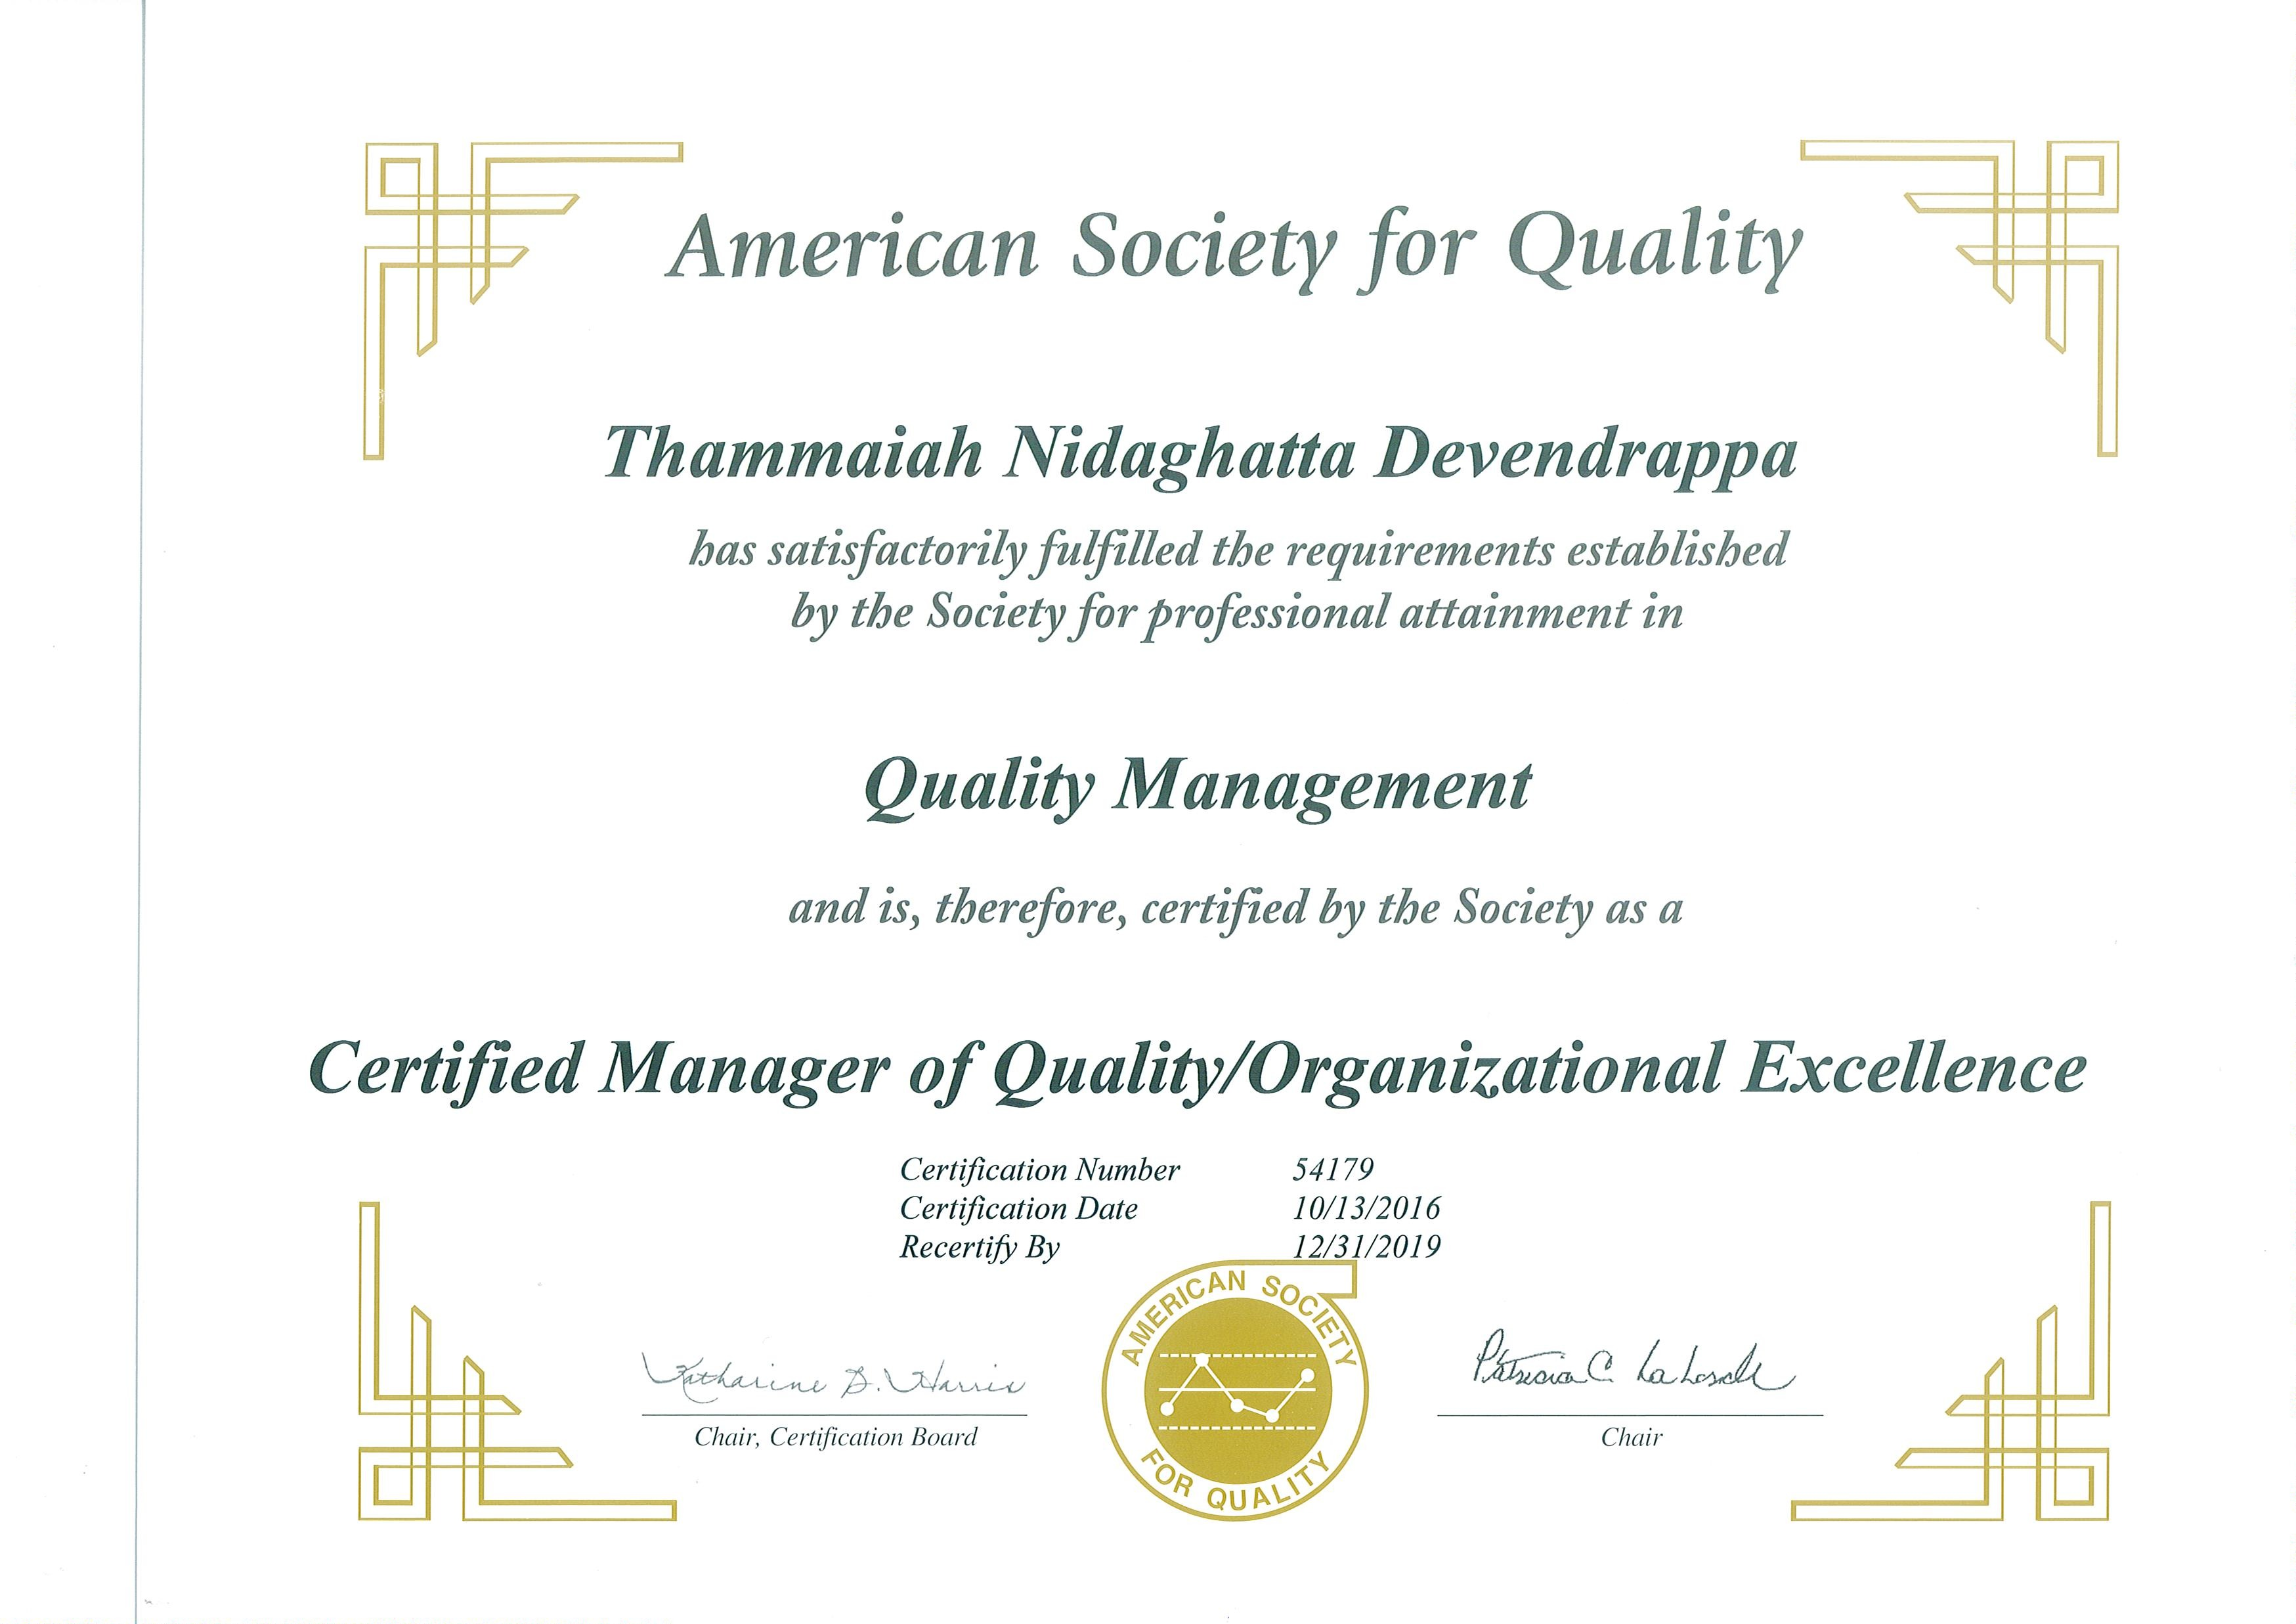 Thammaiah nidaghatta devendrappa bayt certified manager of quality organizational excellence by american society of quality asq certificate xflitez Choice Image